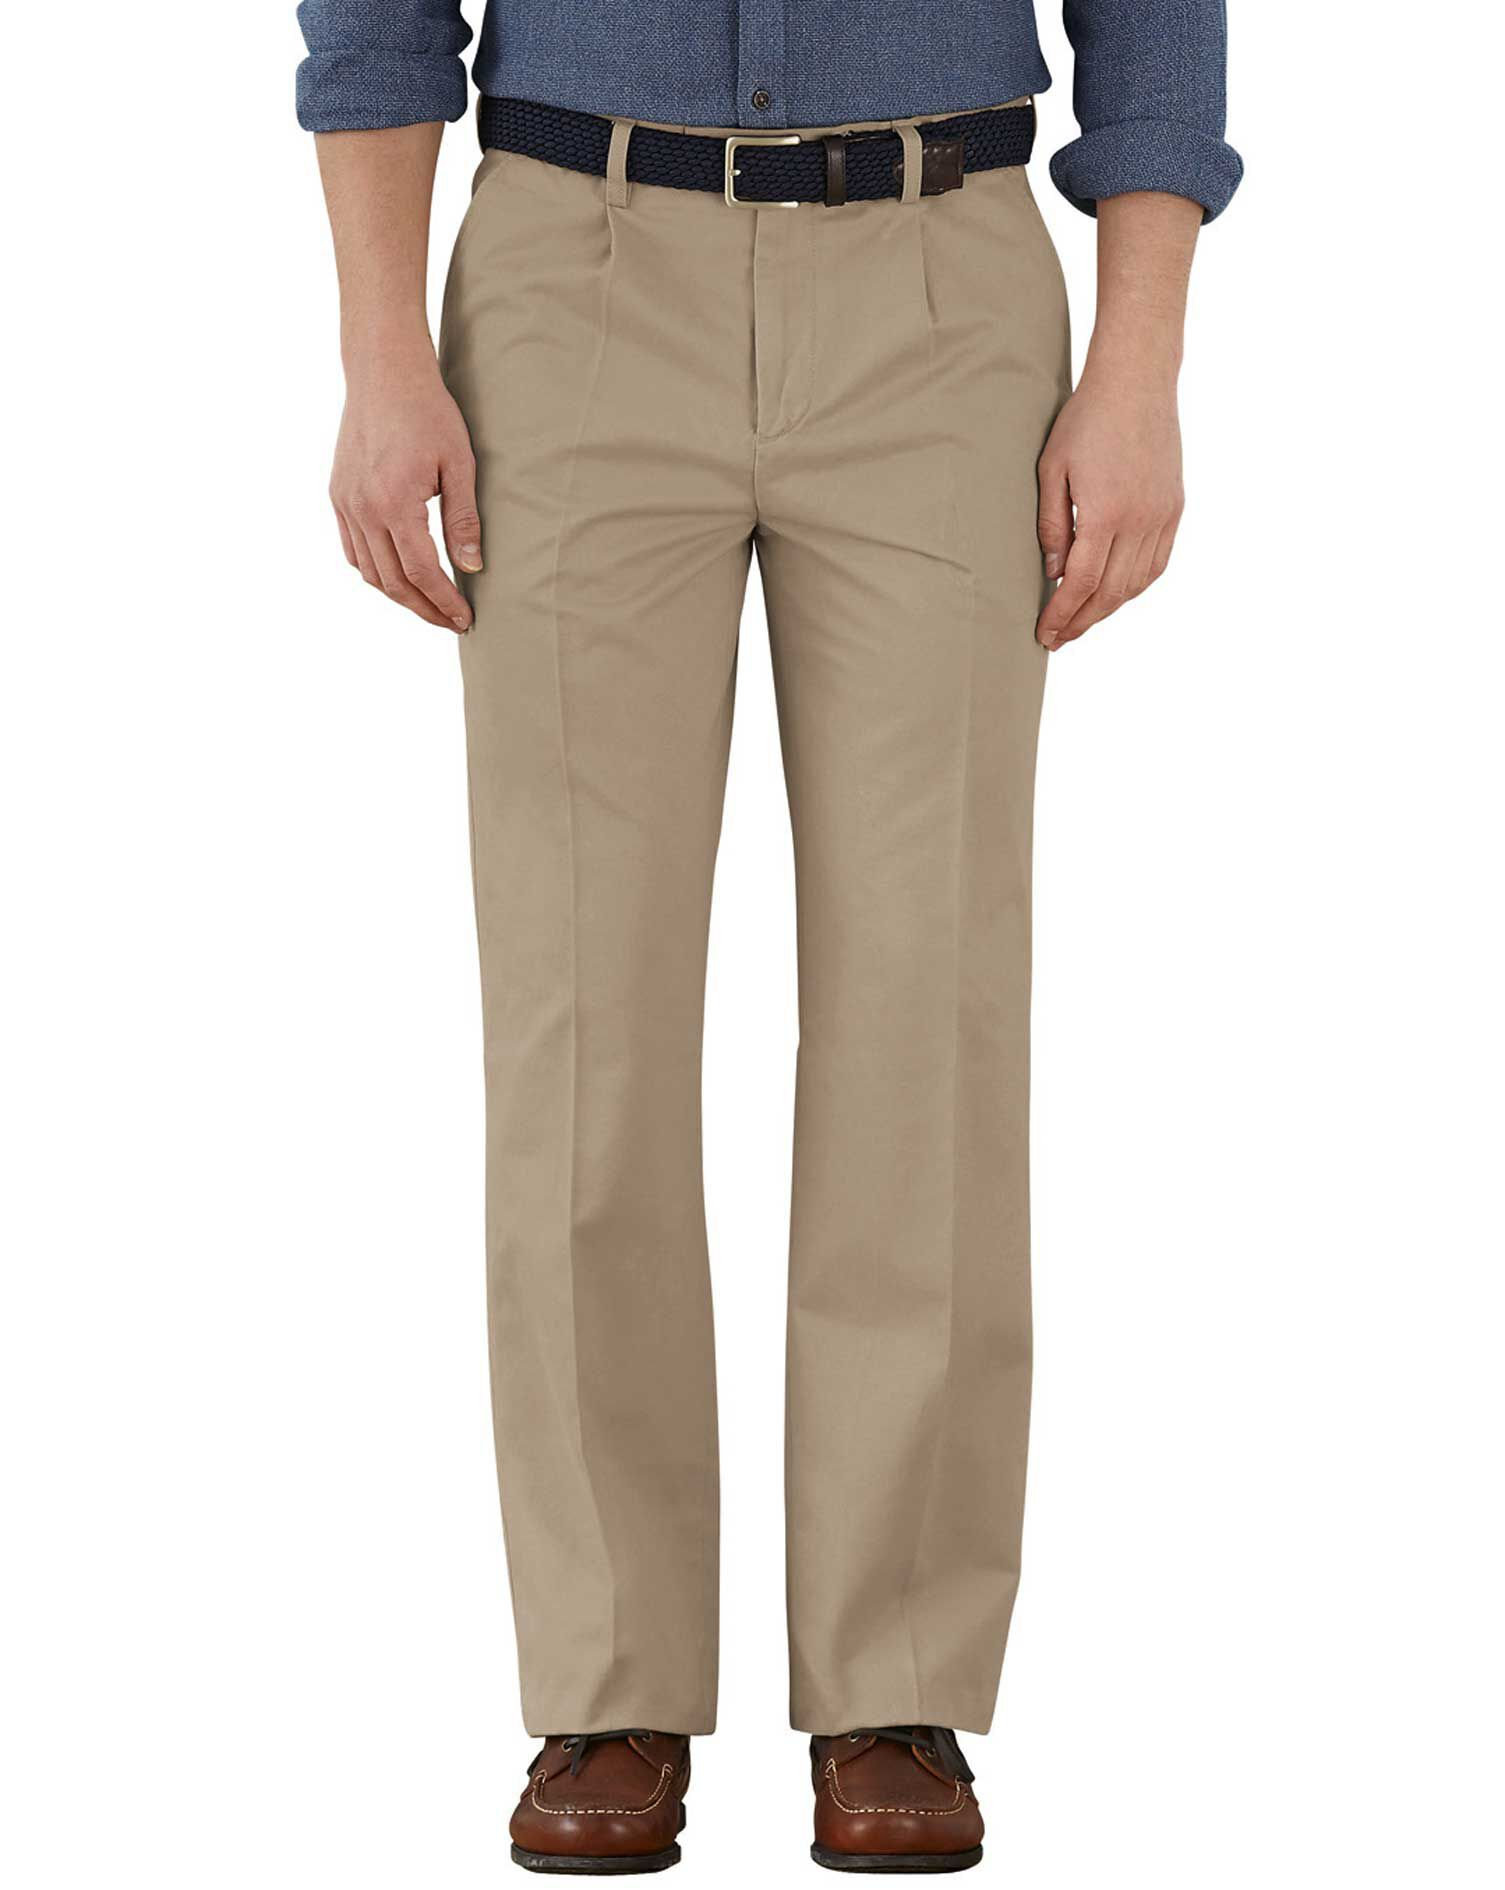 Stone Classic Fit Single Pleat Weekend Cotton Chino Trousers Size W32 L29 by Charles Tyrwhitt